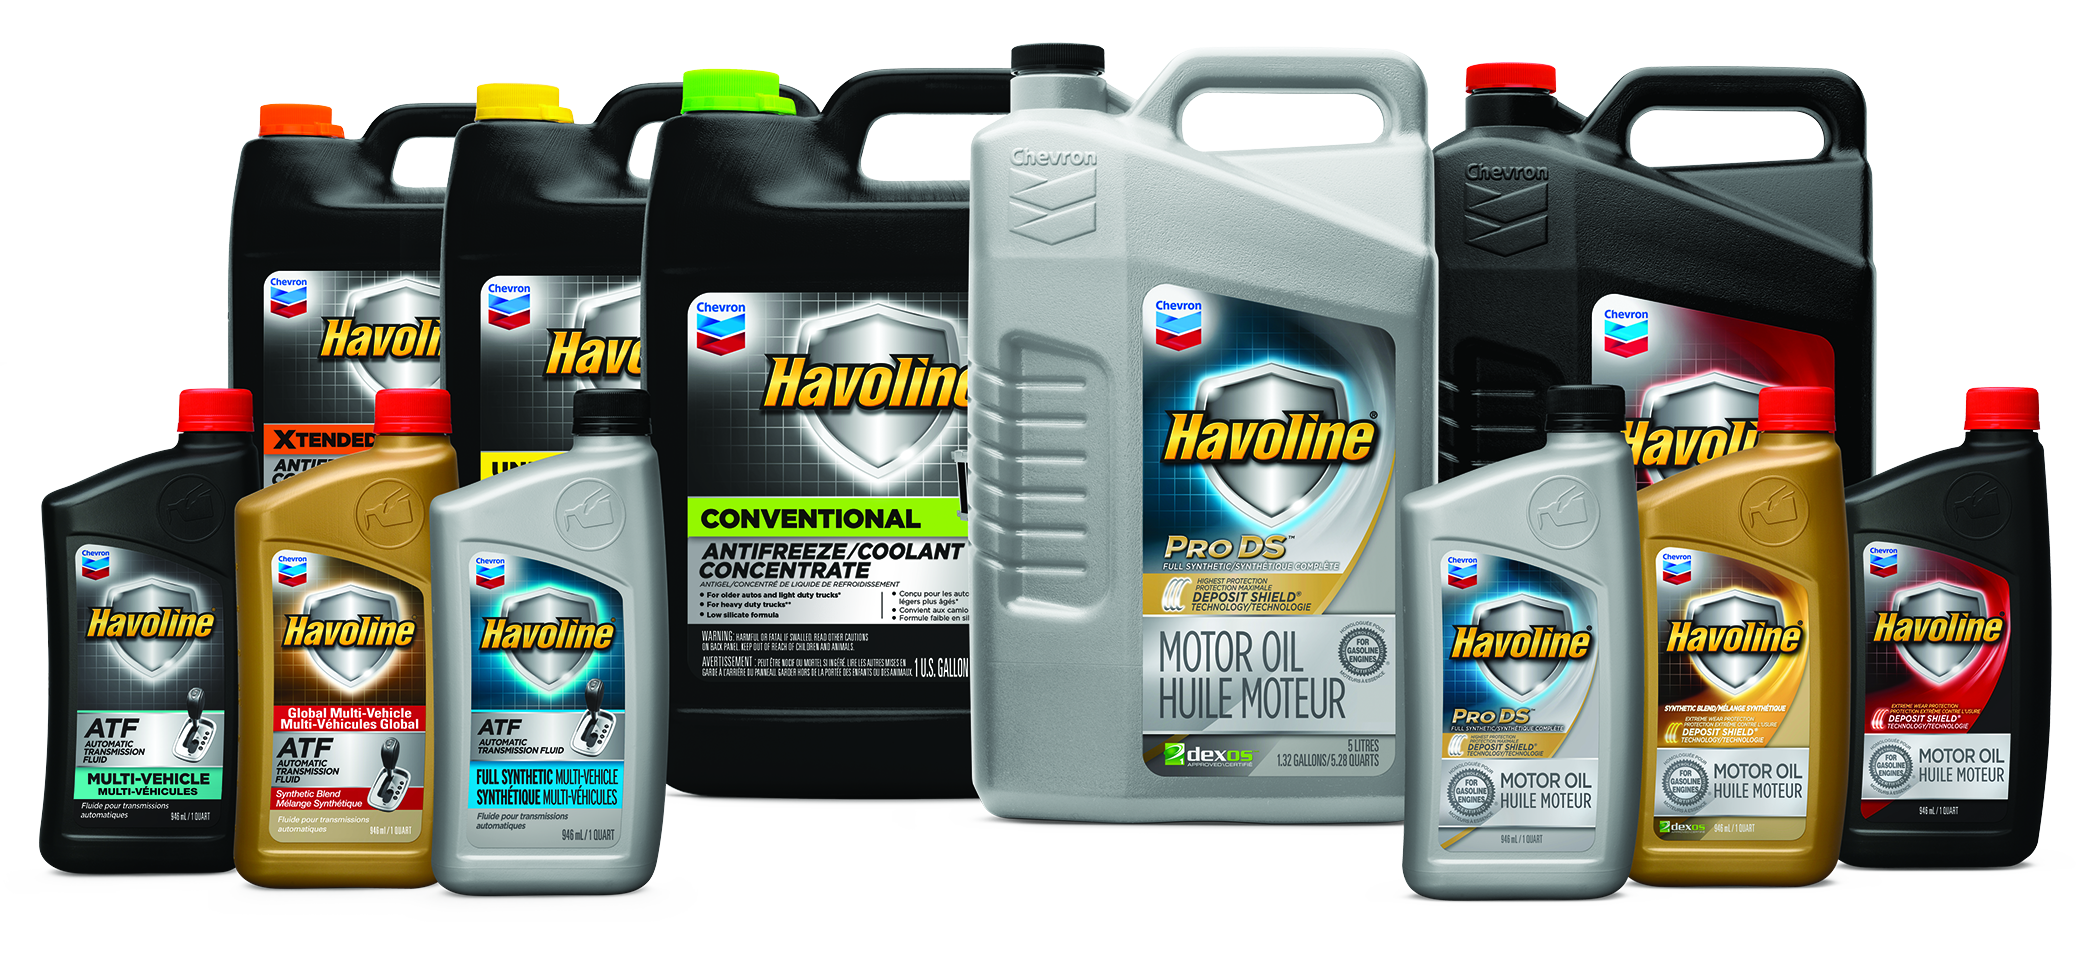 Havoline Products Family